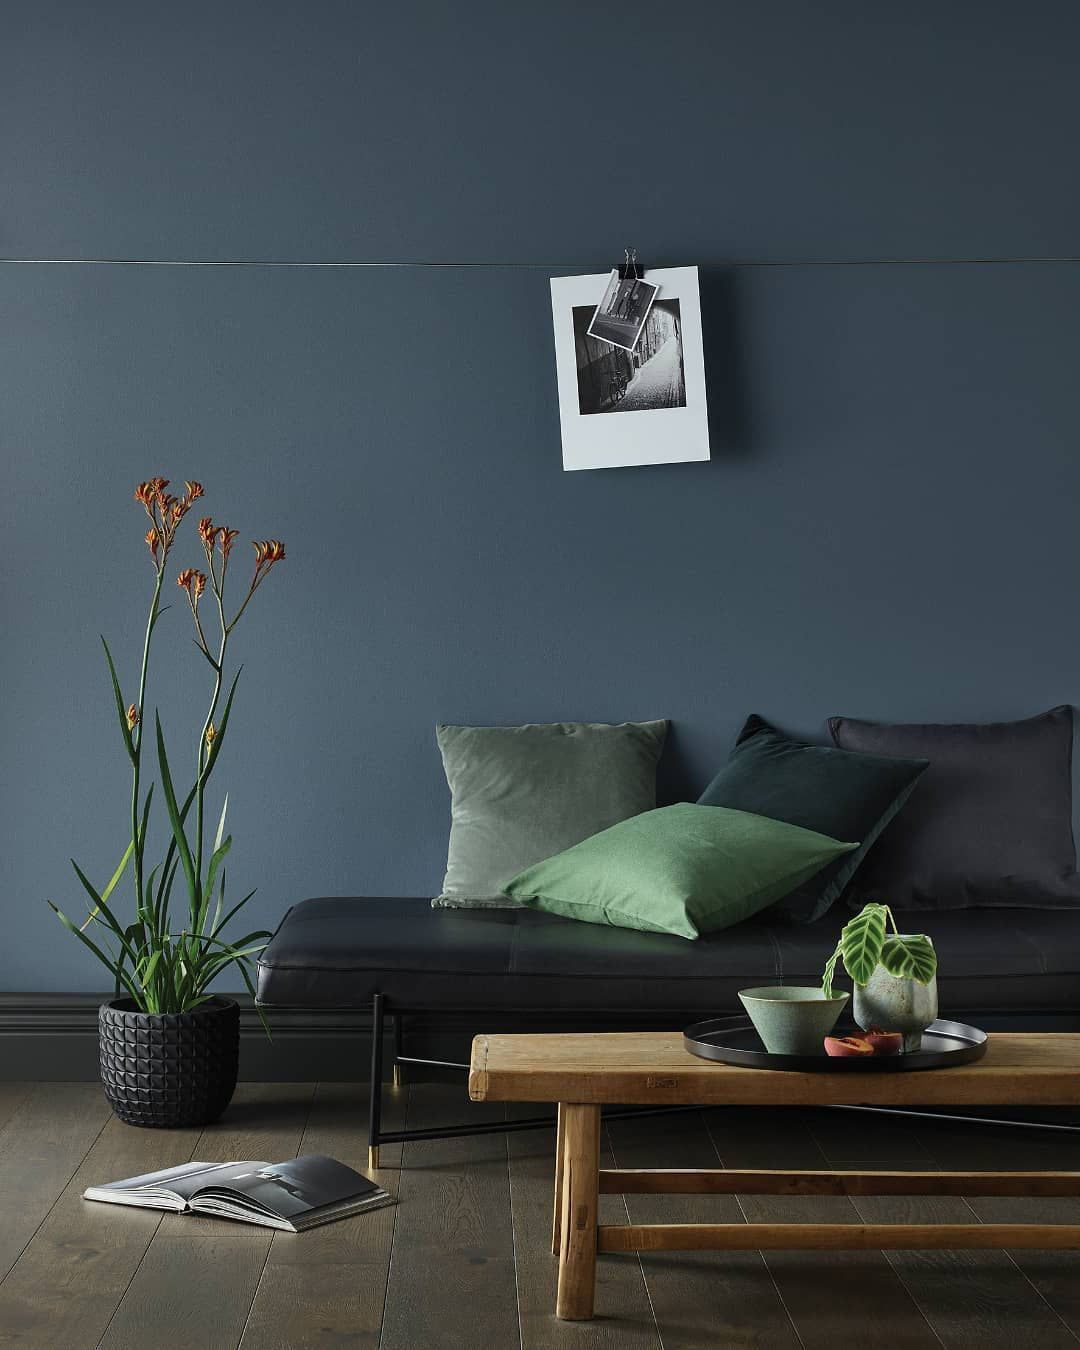 Porter S Paints On Instagram Gunmetal Grey In Our Eggshell Finish An Intriguing Greyed Off Slate B In 2020 Blue Living Room Color Blue Room Paint Slate Blue Walls #slate #blue #living #room